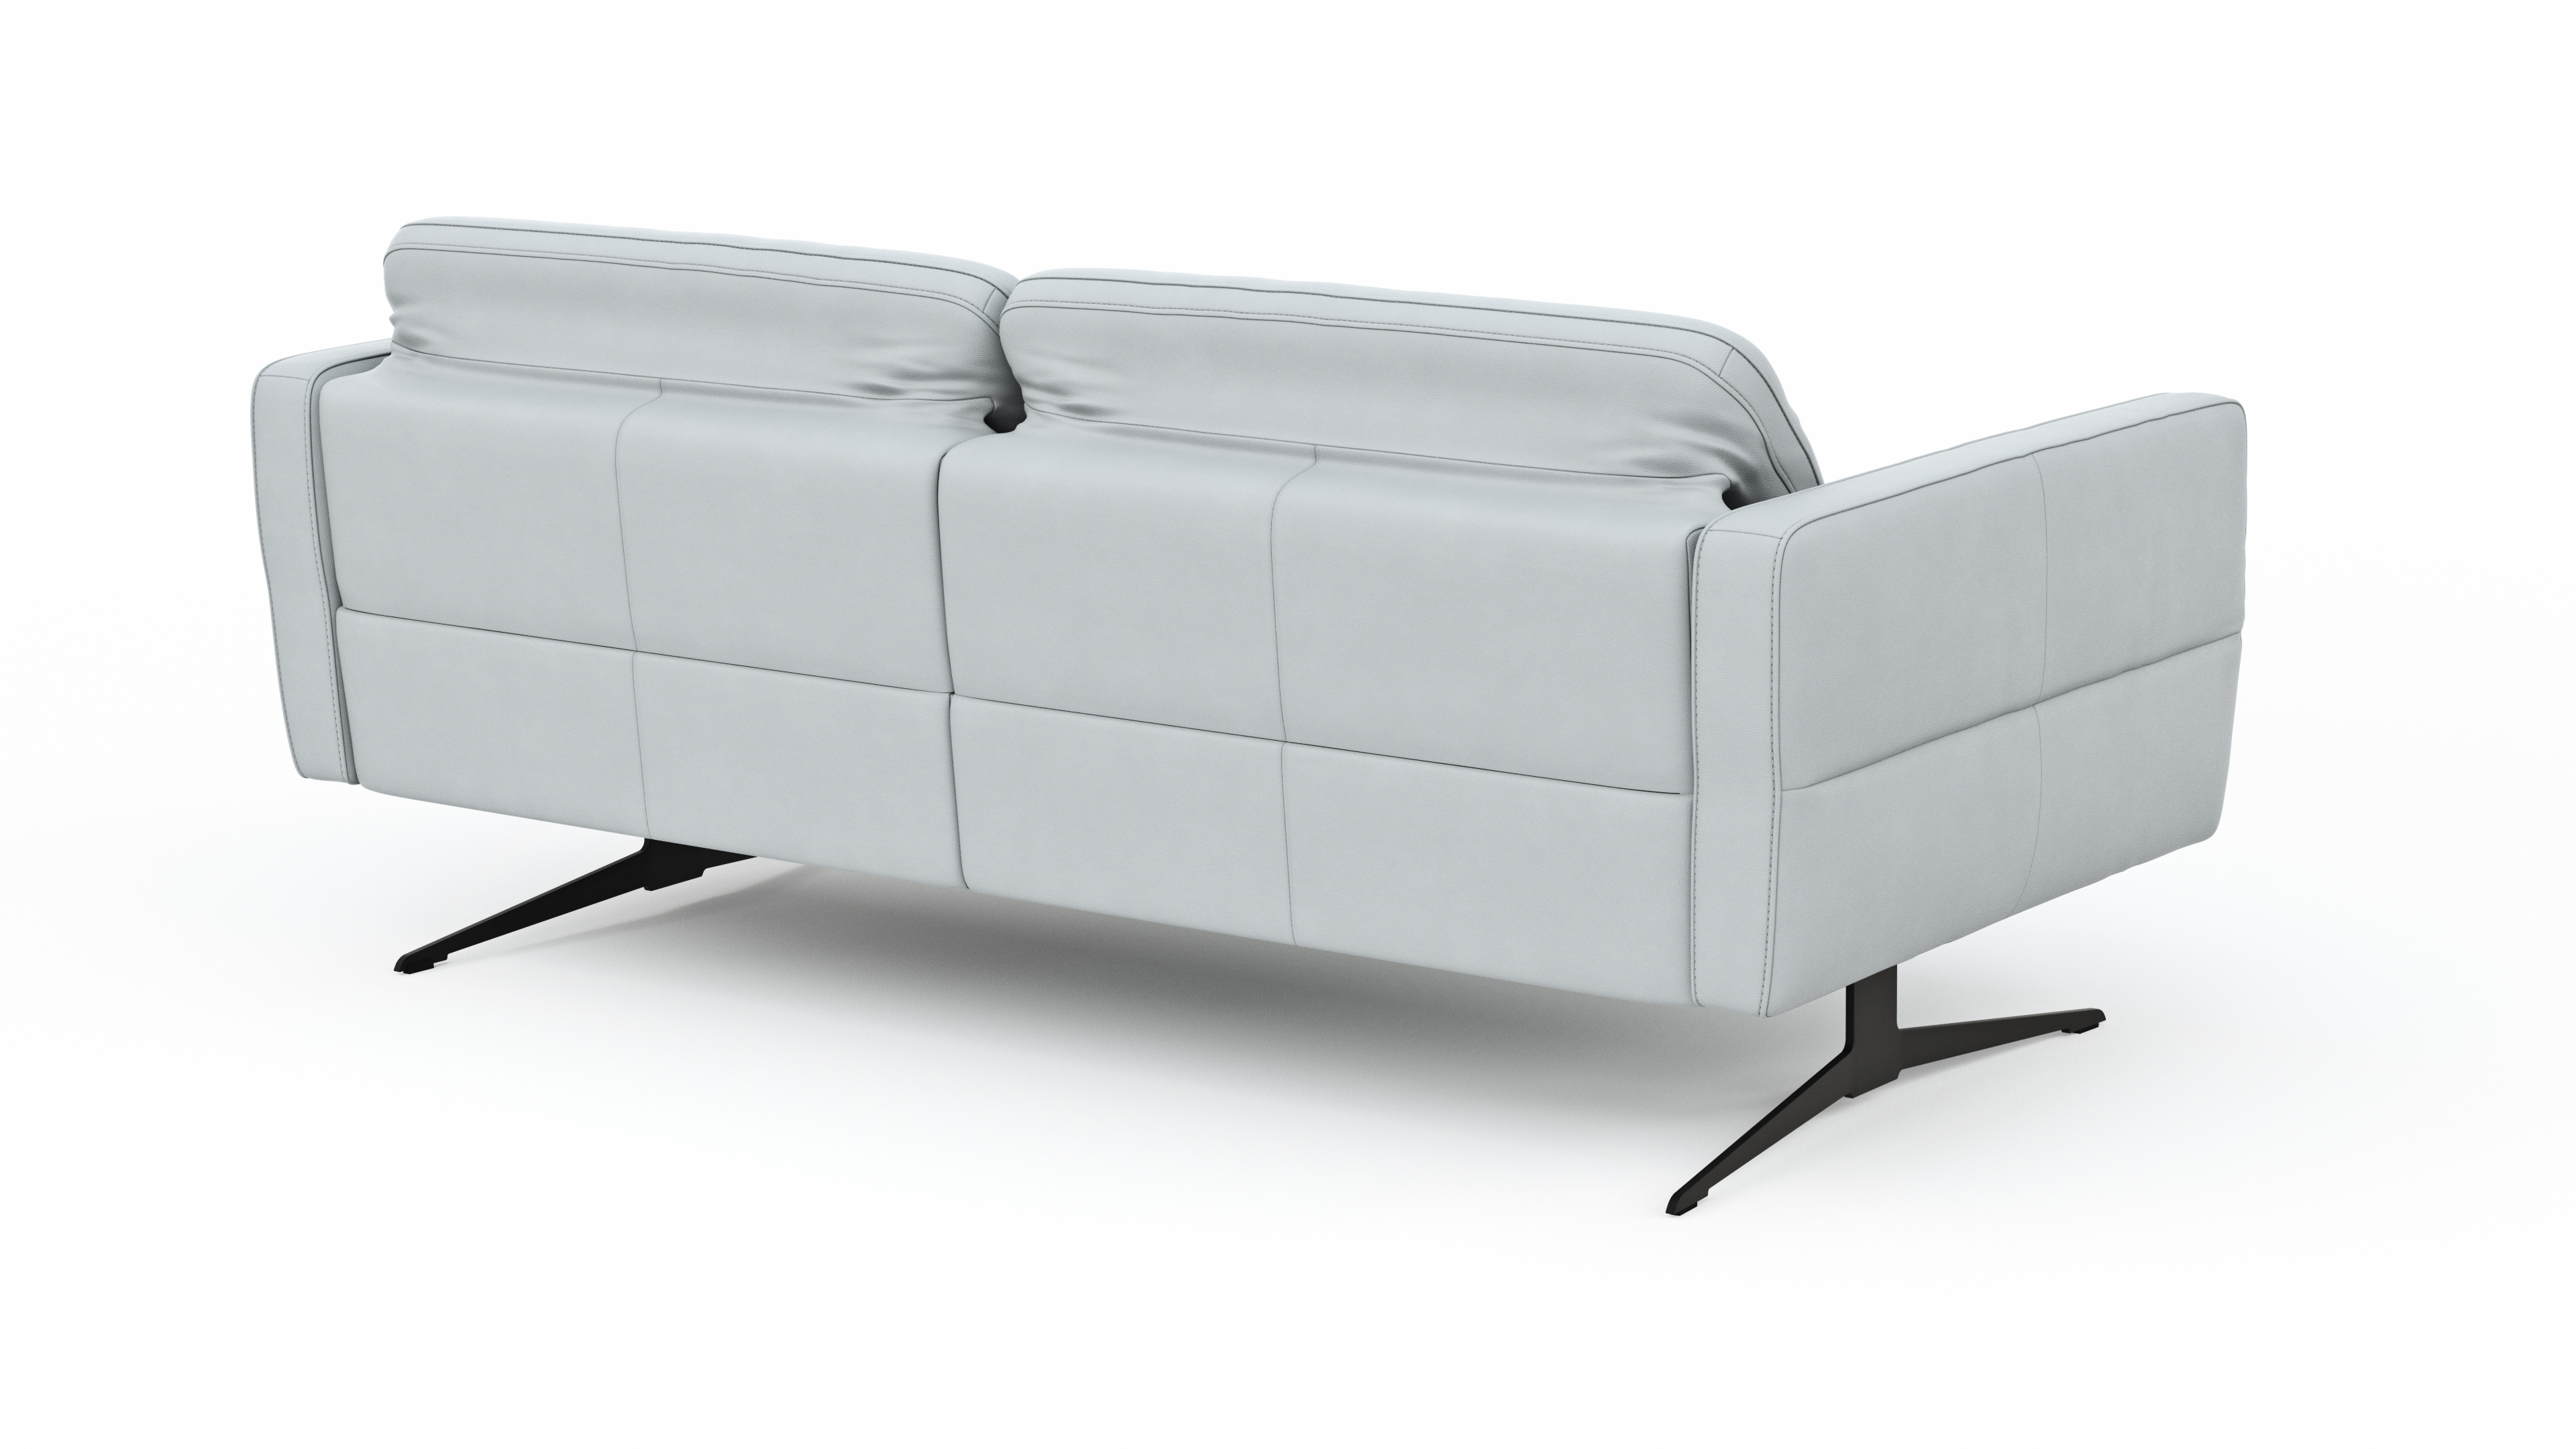 Global Select Sofa Estrela freisteller 3 104184 | Homepoet